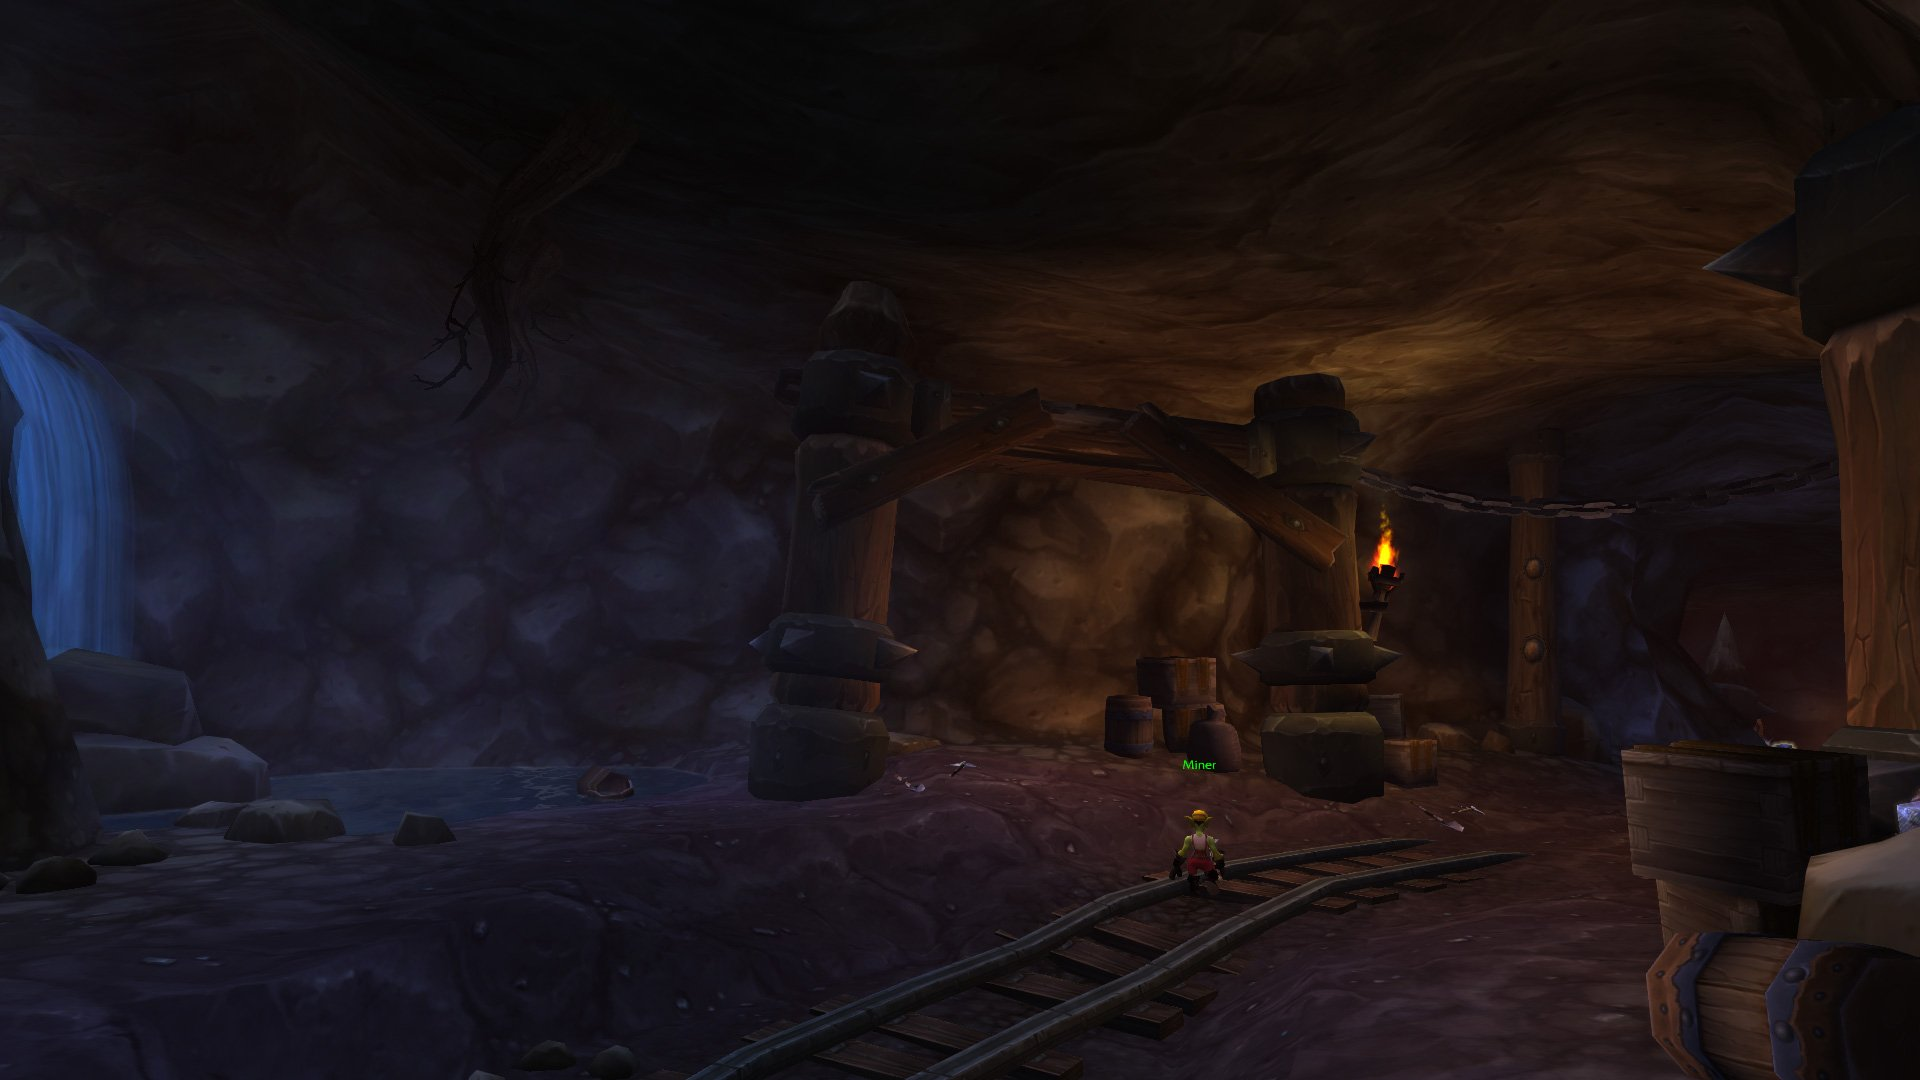 Warlords of draenor garrisons lunarfall excavation frostwall level 3 screenshots malvernweather Image collections